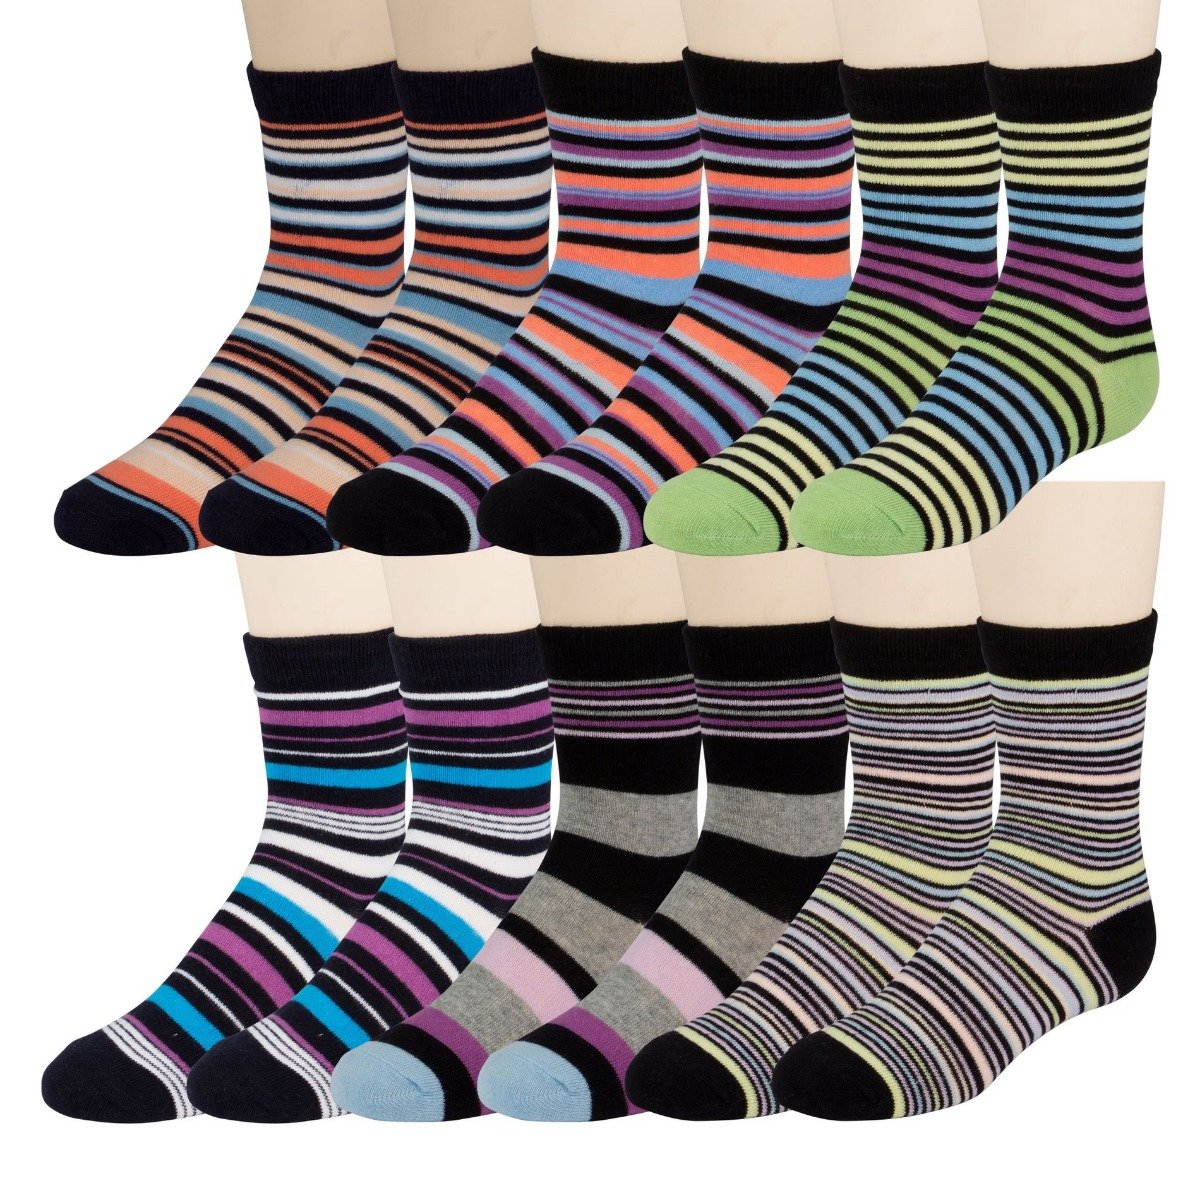 12 Pairs excell Boys Dress Socks, 12 pairs, Striped Colorful Fancy Cotton Socks Striped Colorful Fancy Cotton Socks (6-7) 8432_6-7